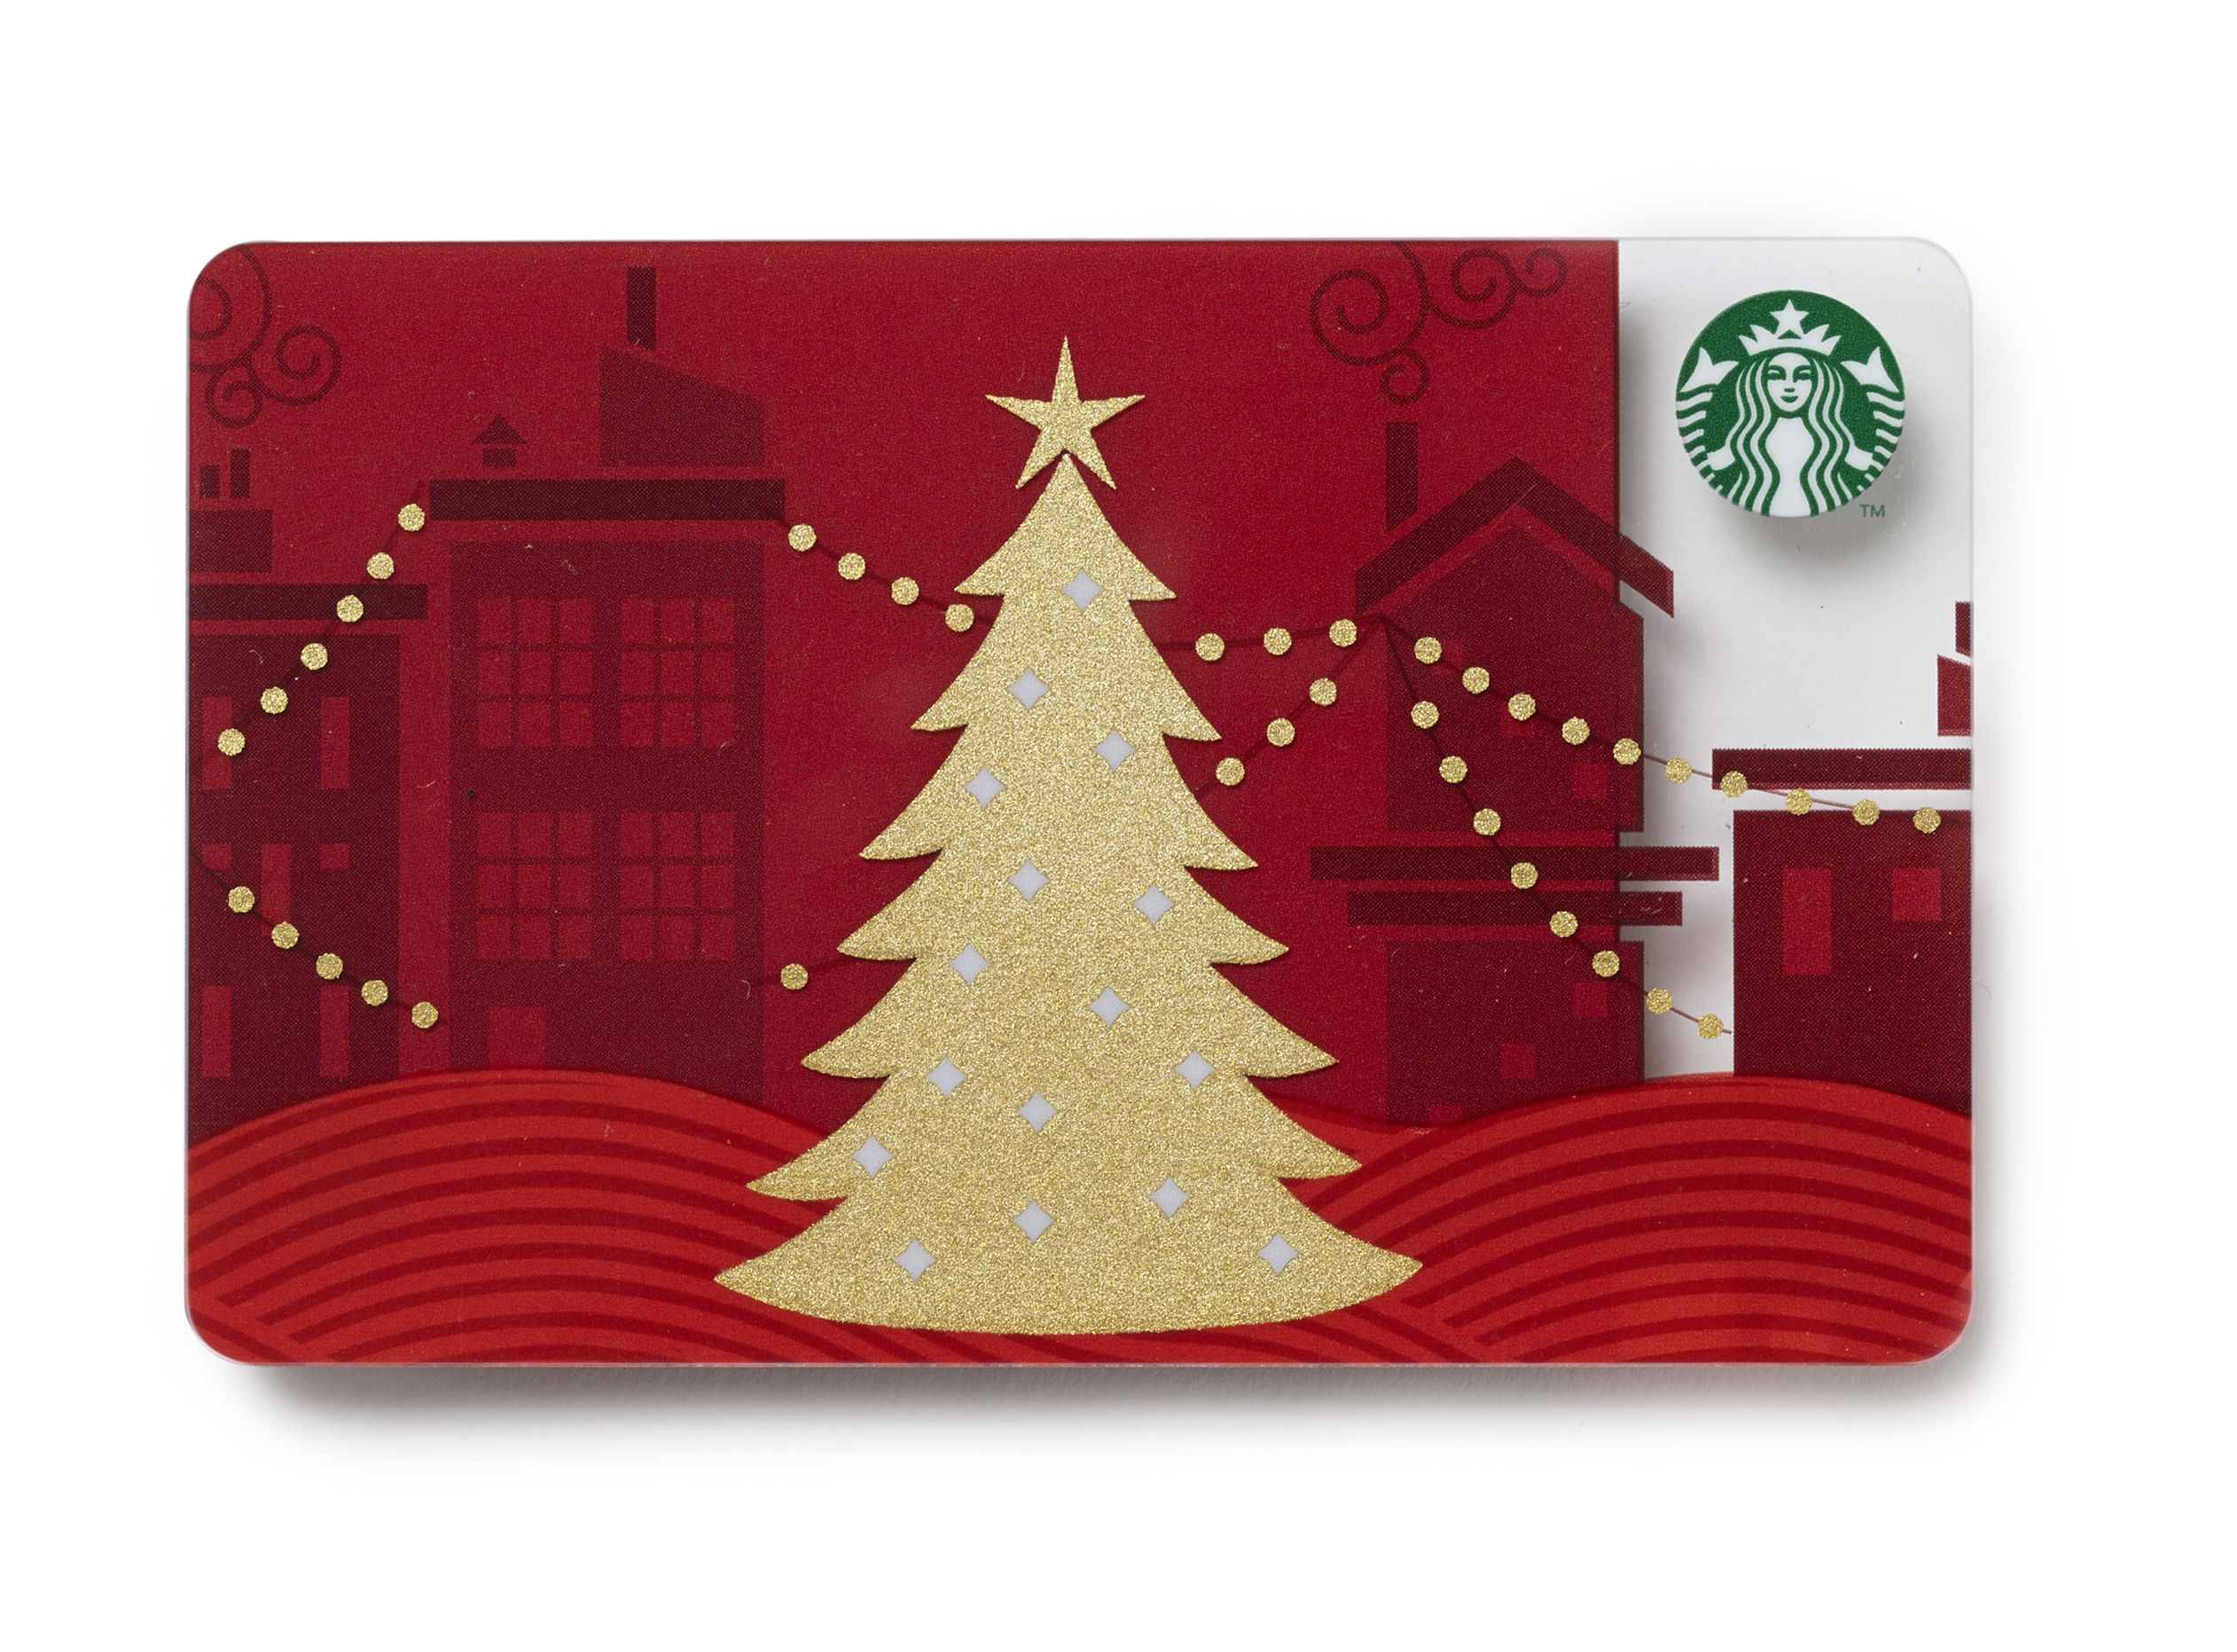 starbucks anticipates busiest day of the year for starbucks card purchases business wire